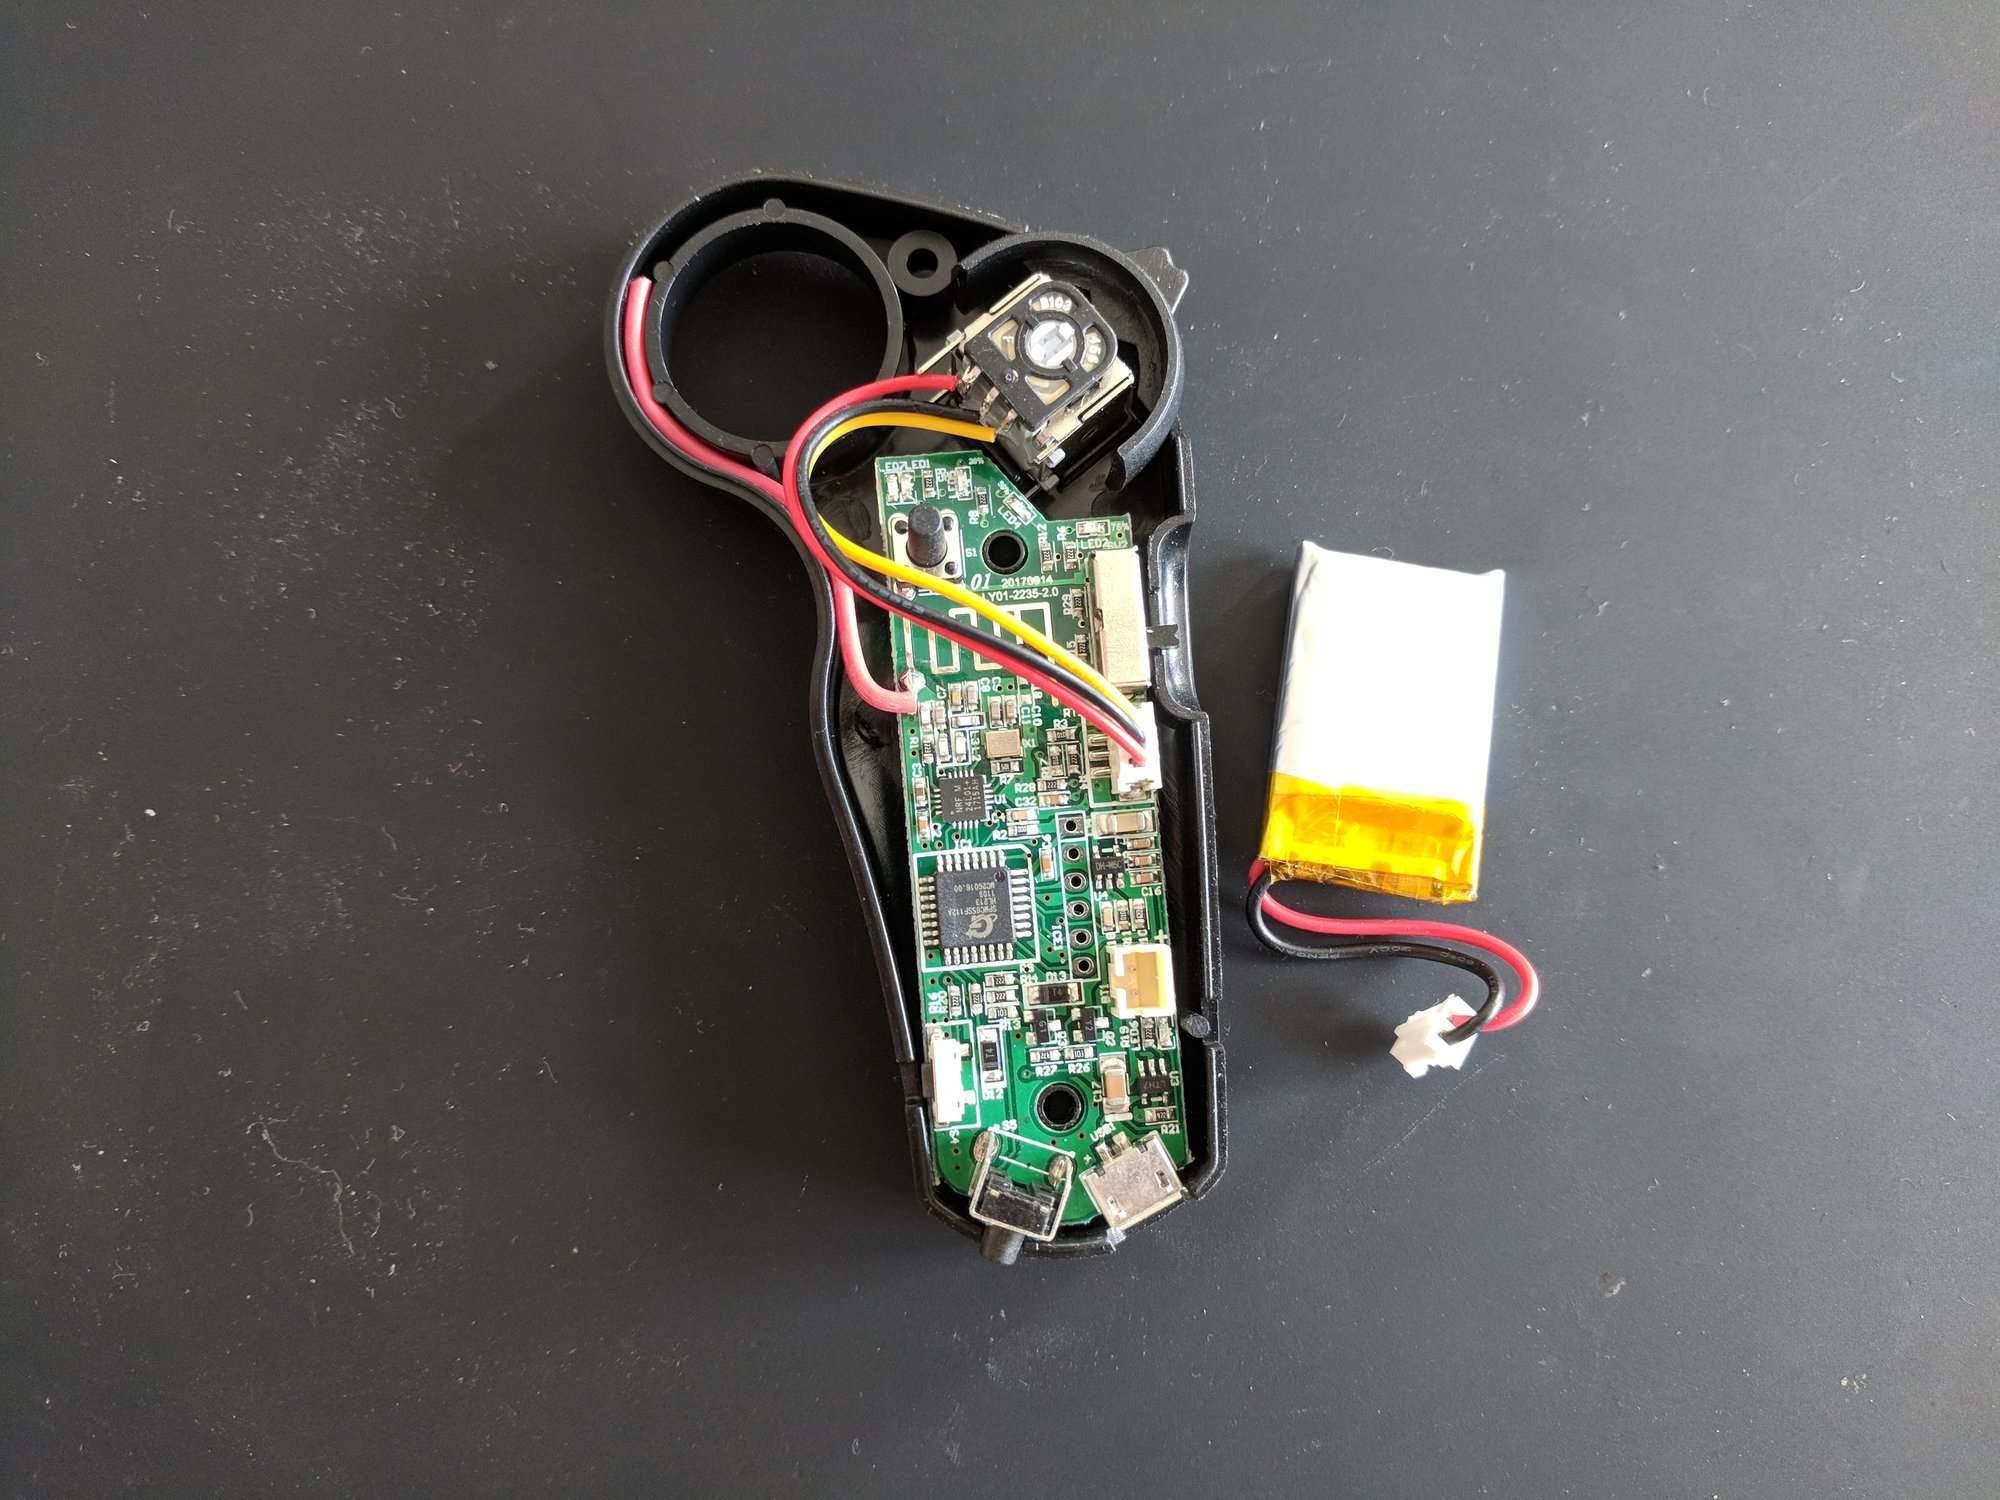 The disassembled remote control with disconnected battery